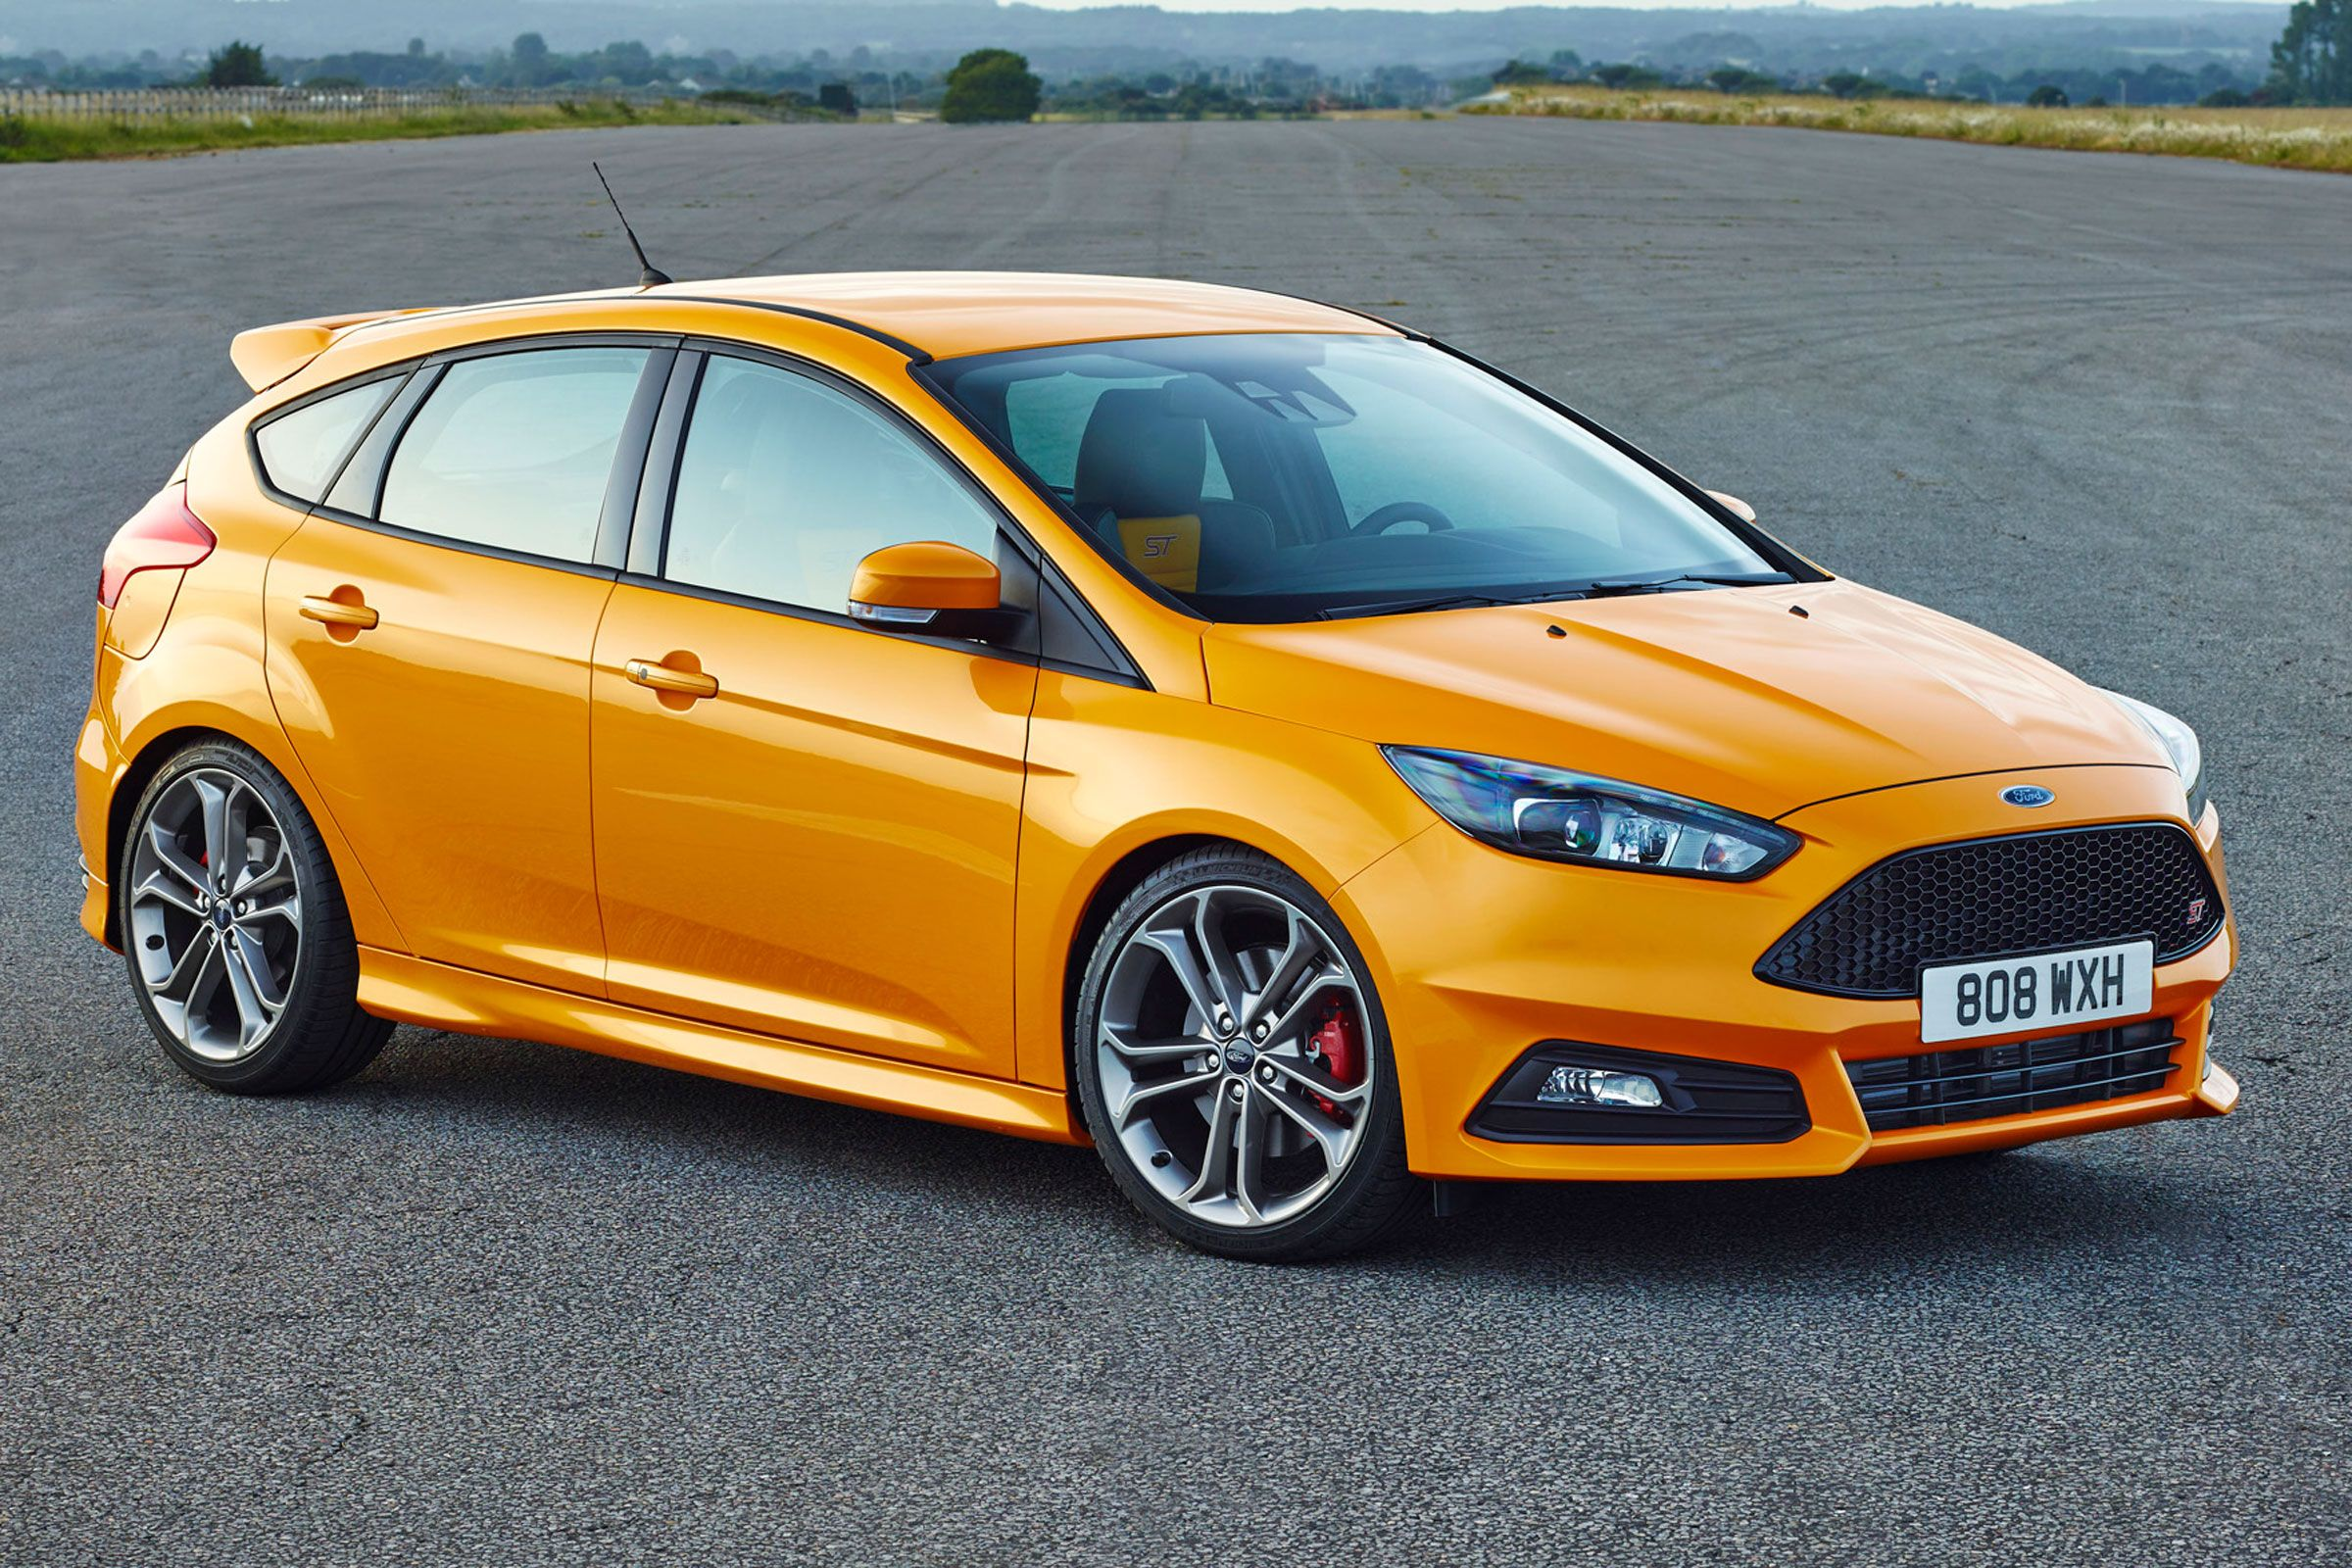 The Focus St With Its 2 0 Litre Turbocharged Engine Packs A Punch But Still Has A Good Sized Boot And 5 Doors Ford Focus New Ford Focus Ford Motorsport